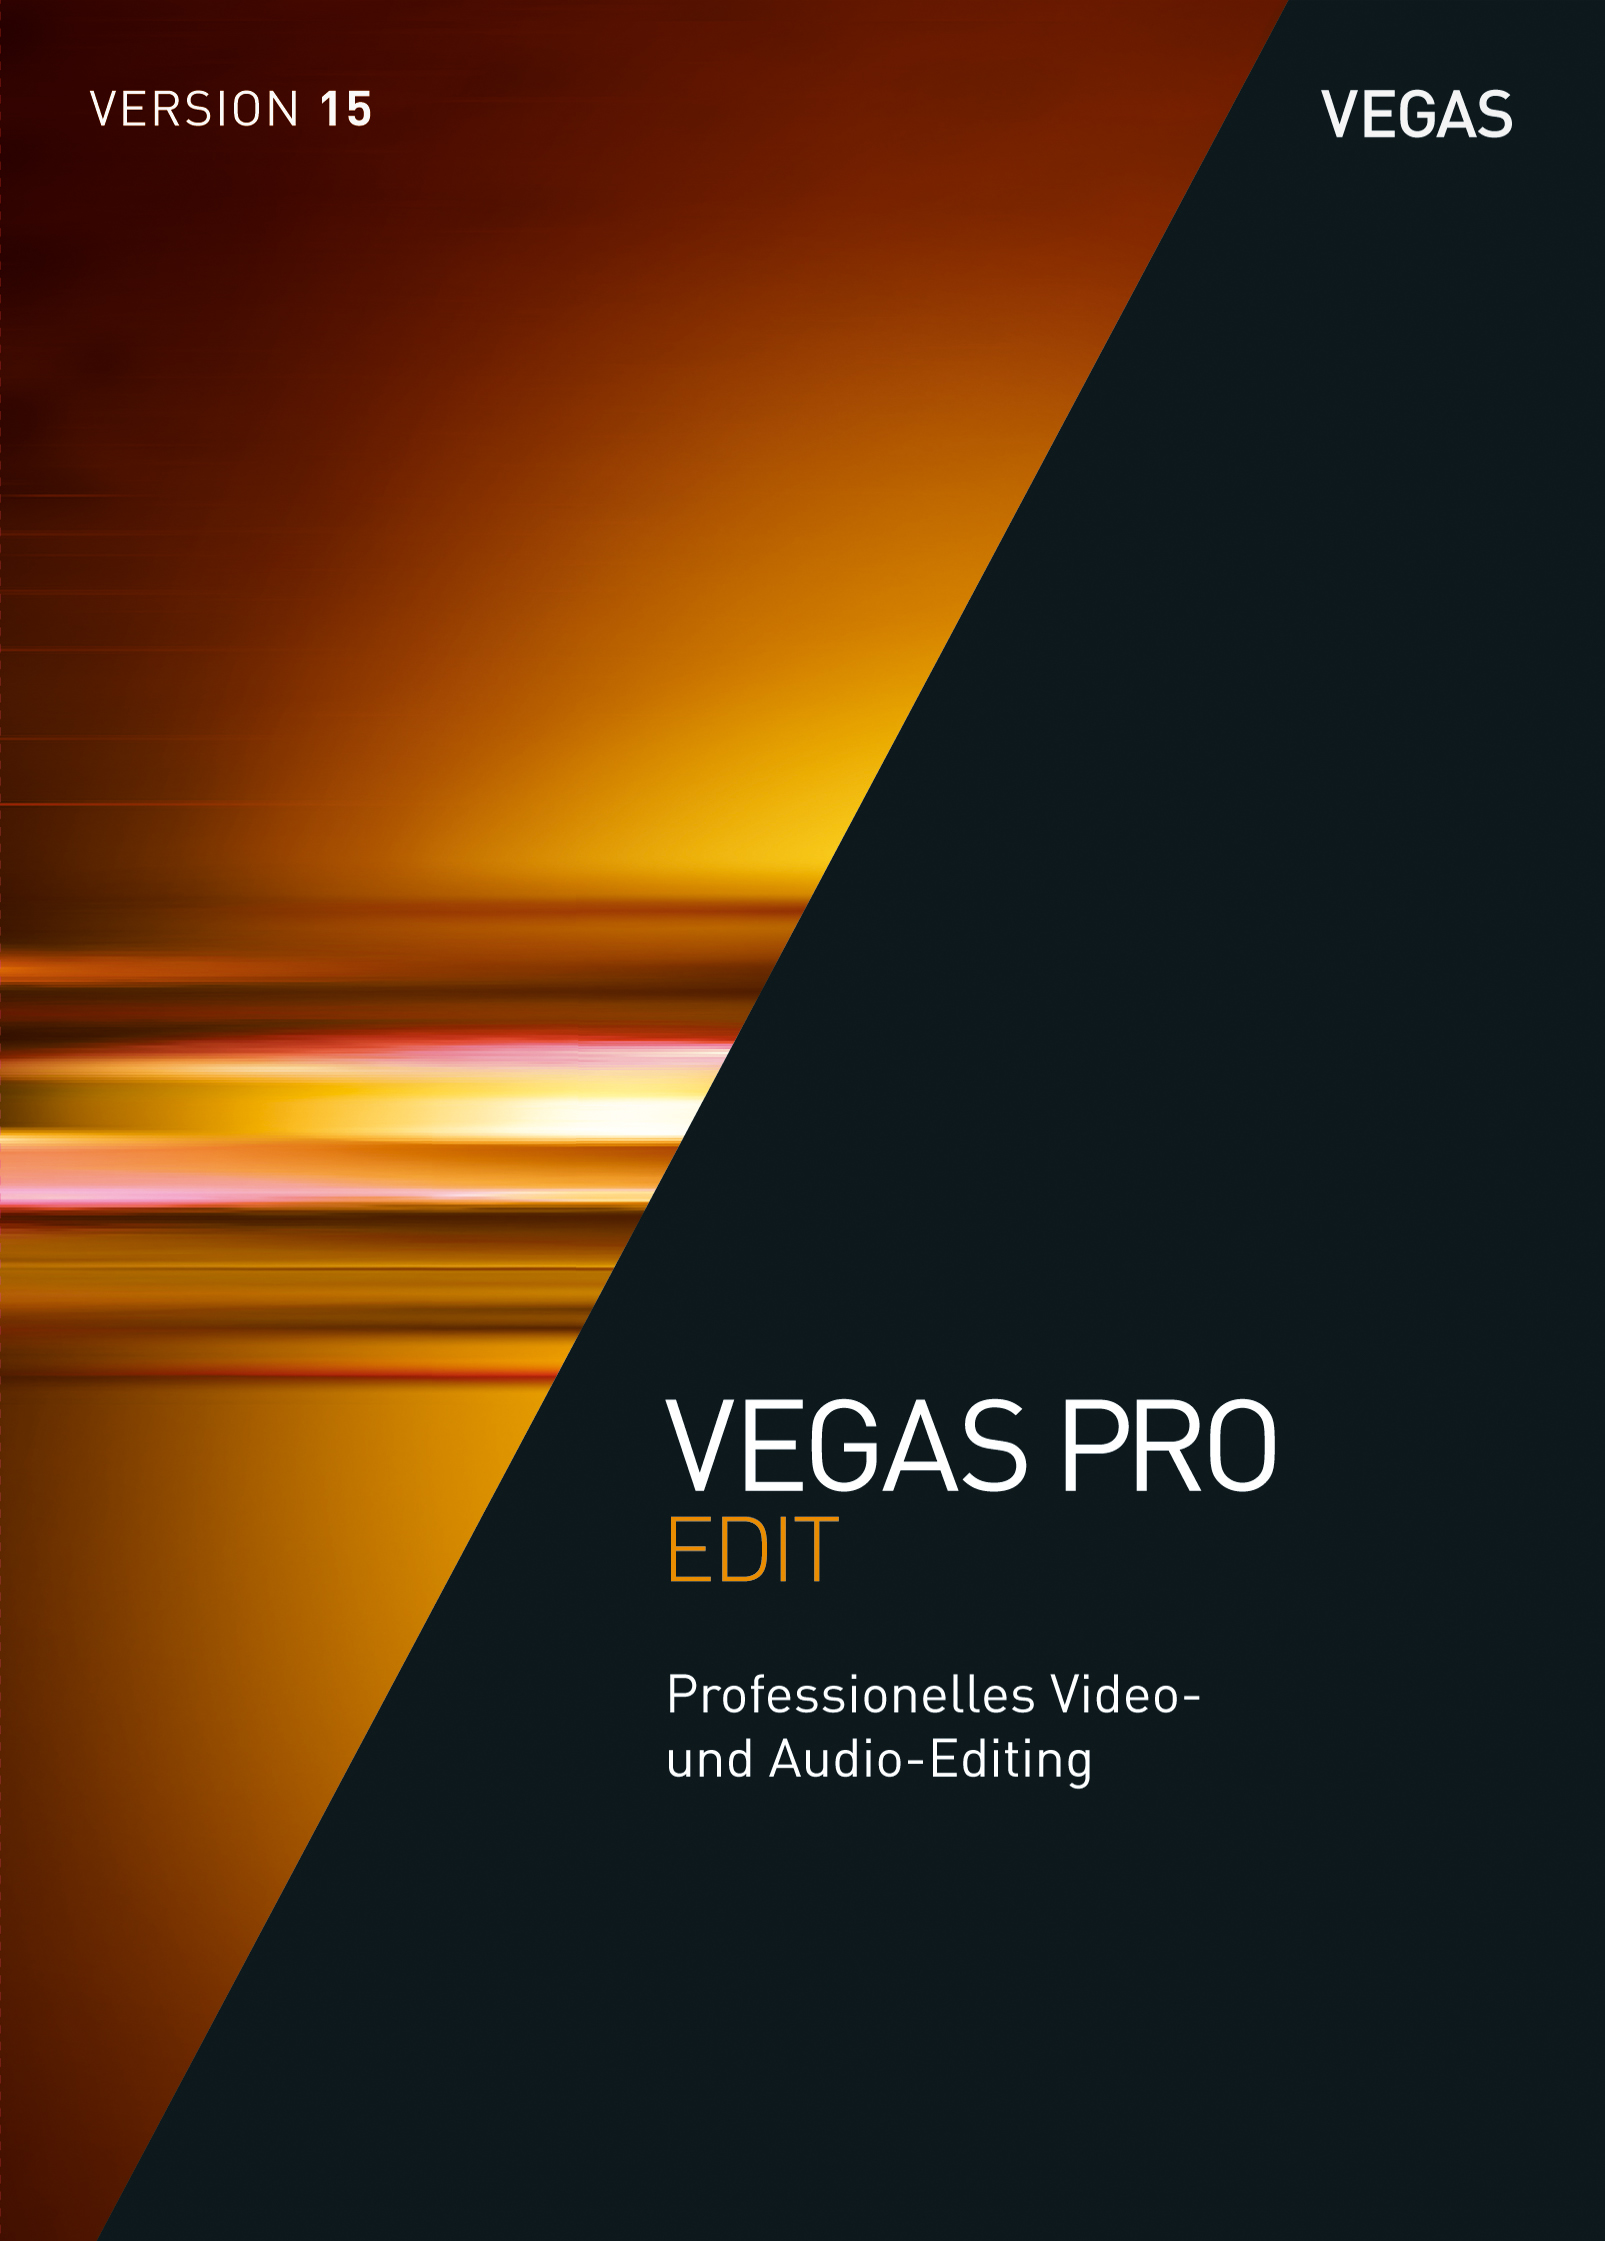 VEGAS Pro 15 EDIT [Download]